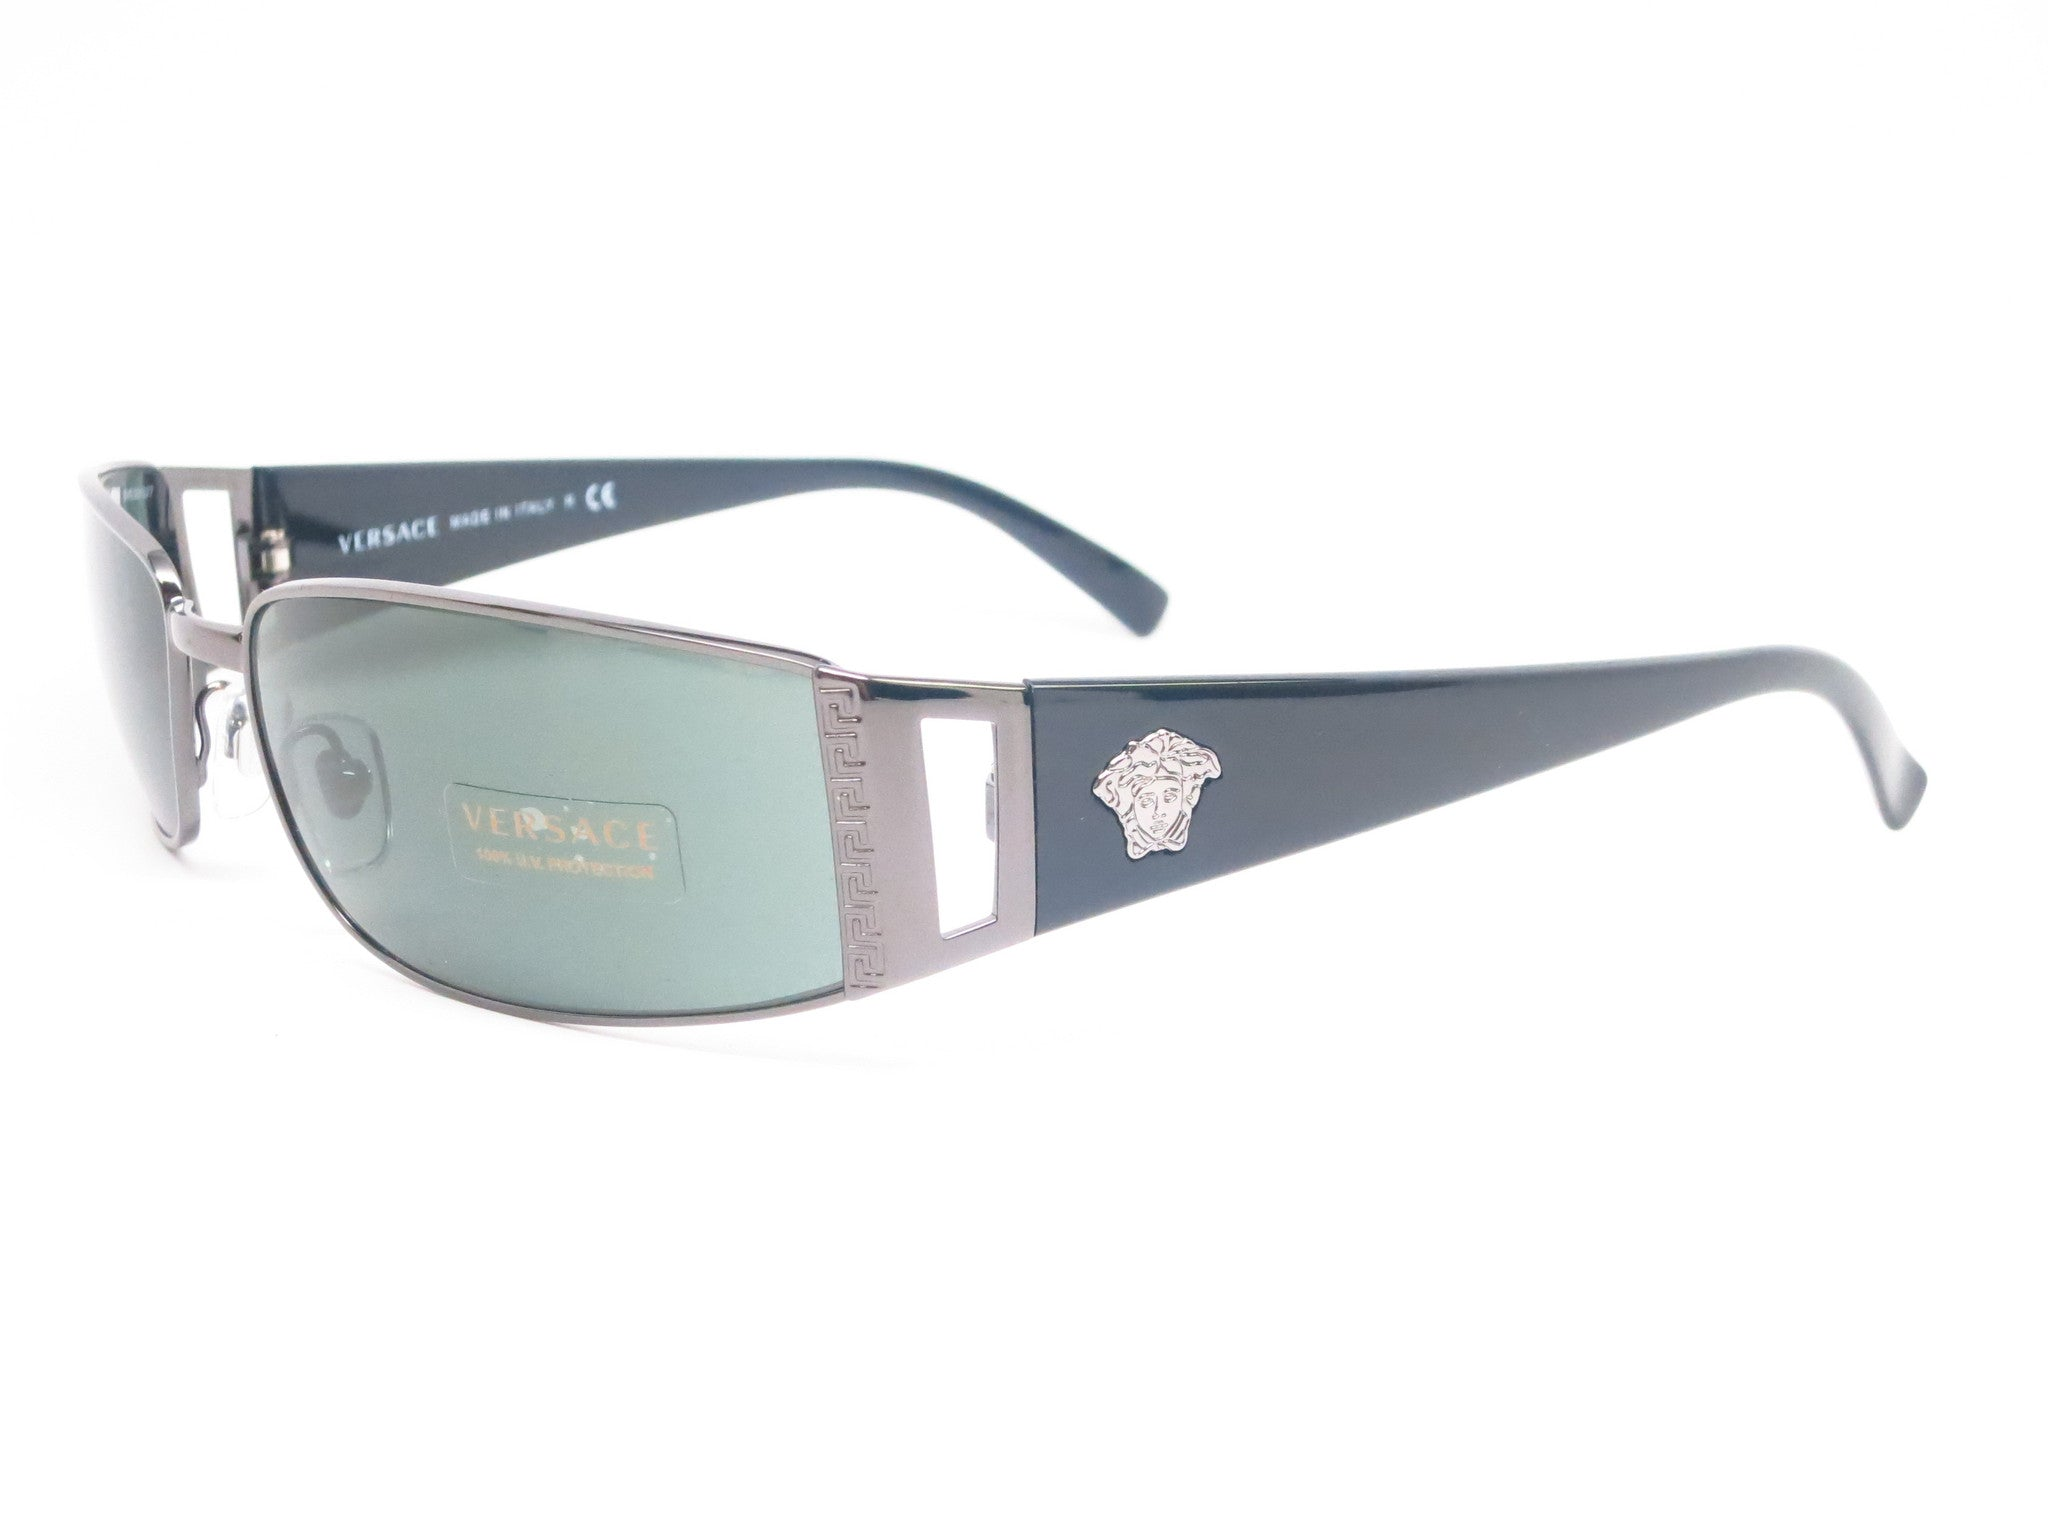 2a049aeb0440 Versace VE 2021 Pewter 1001 6 Sunglasses - Eye Heart Shades - Versace -  Sunglasses